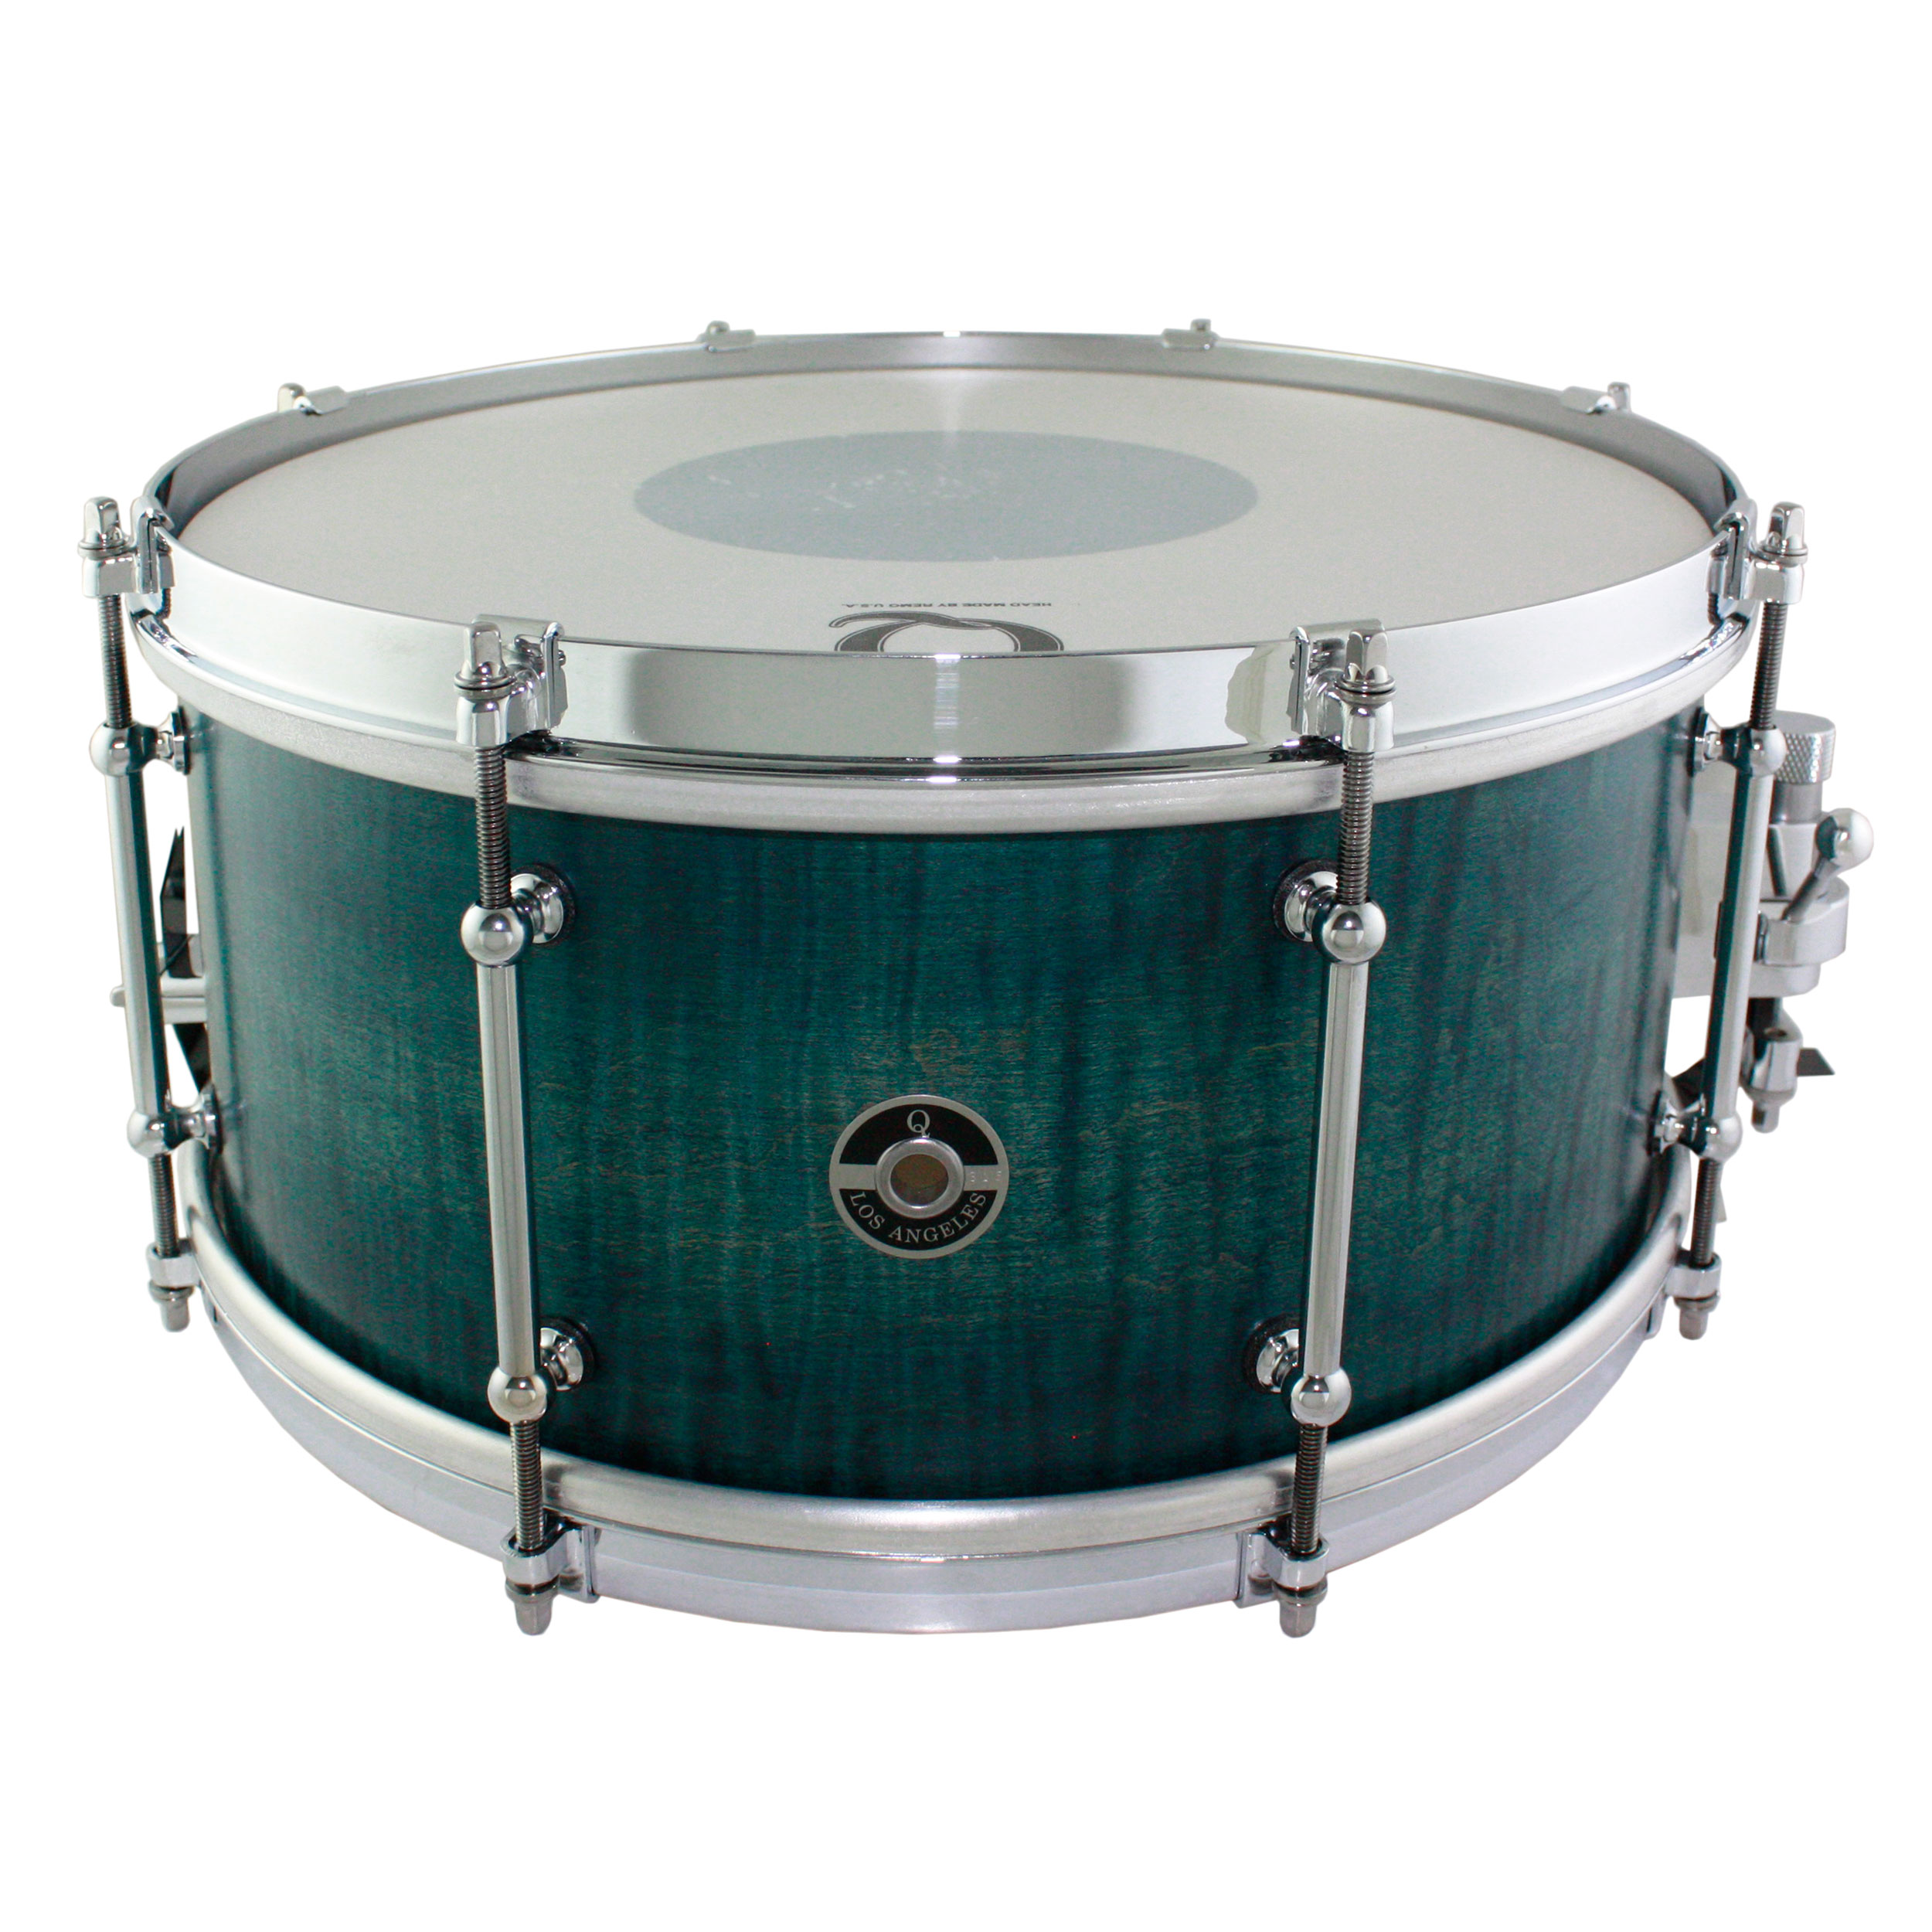 """Q Drum Co. 7"""" x 14"""" Maple Snare Drum in Blue Satin Stain"""